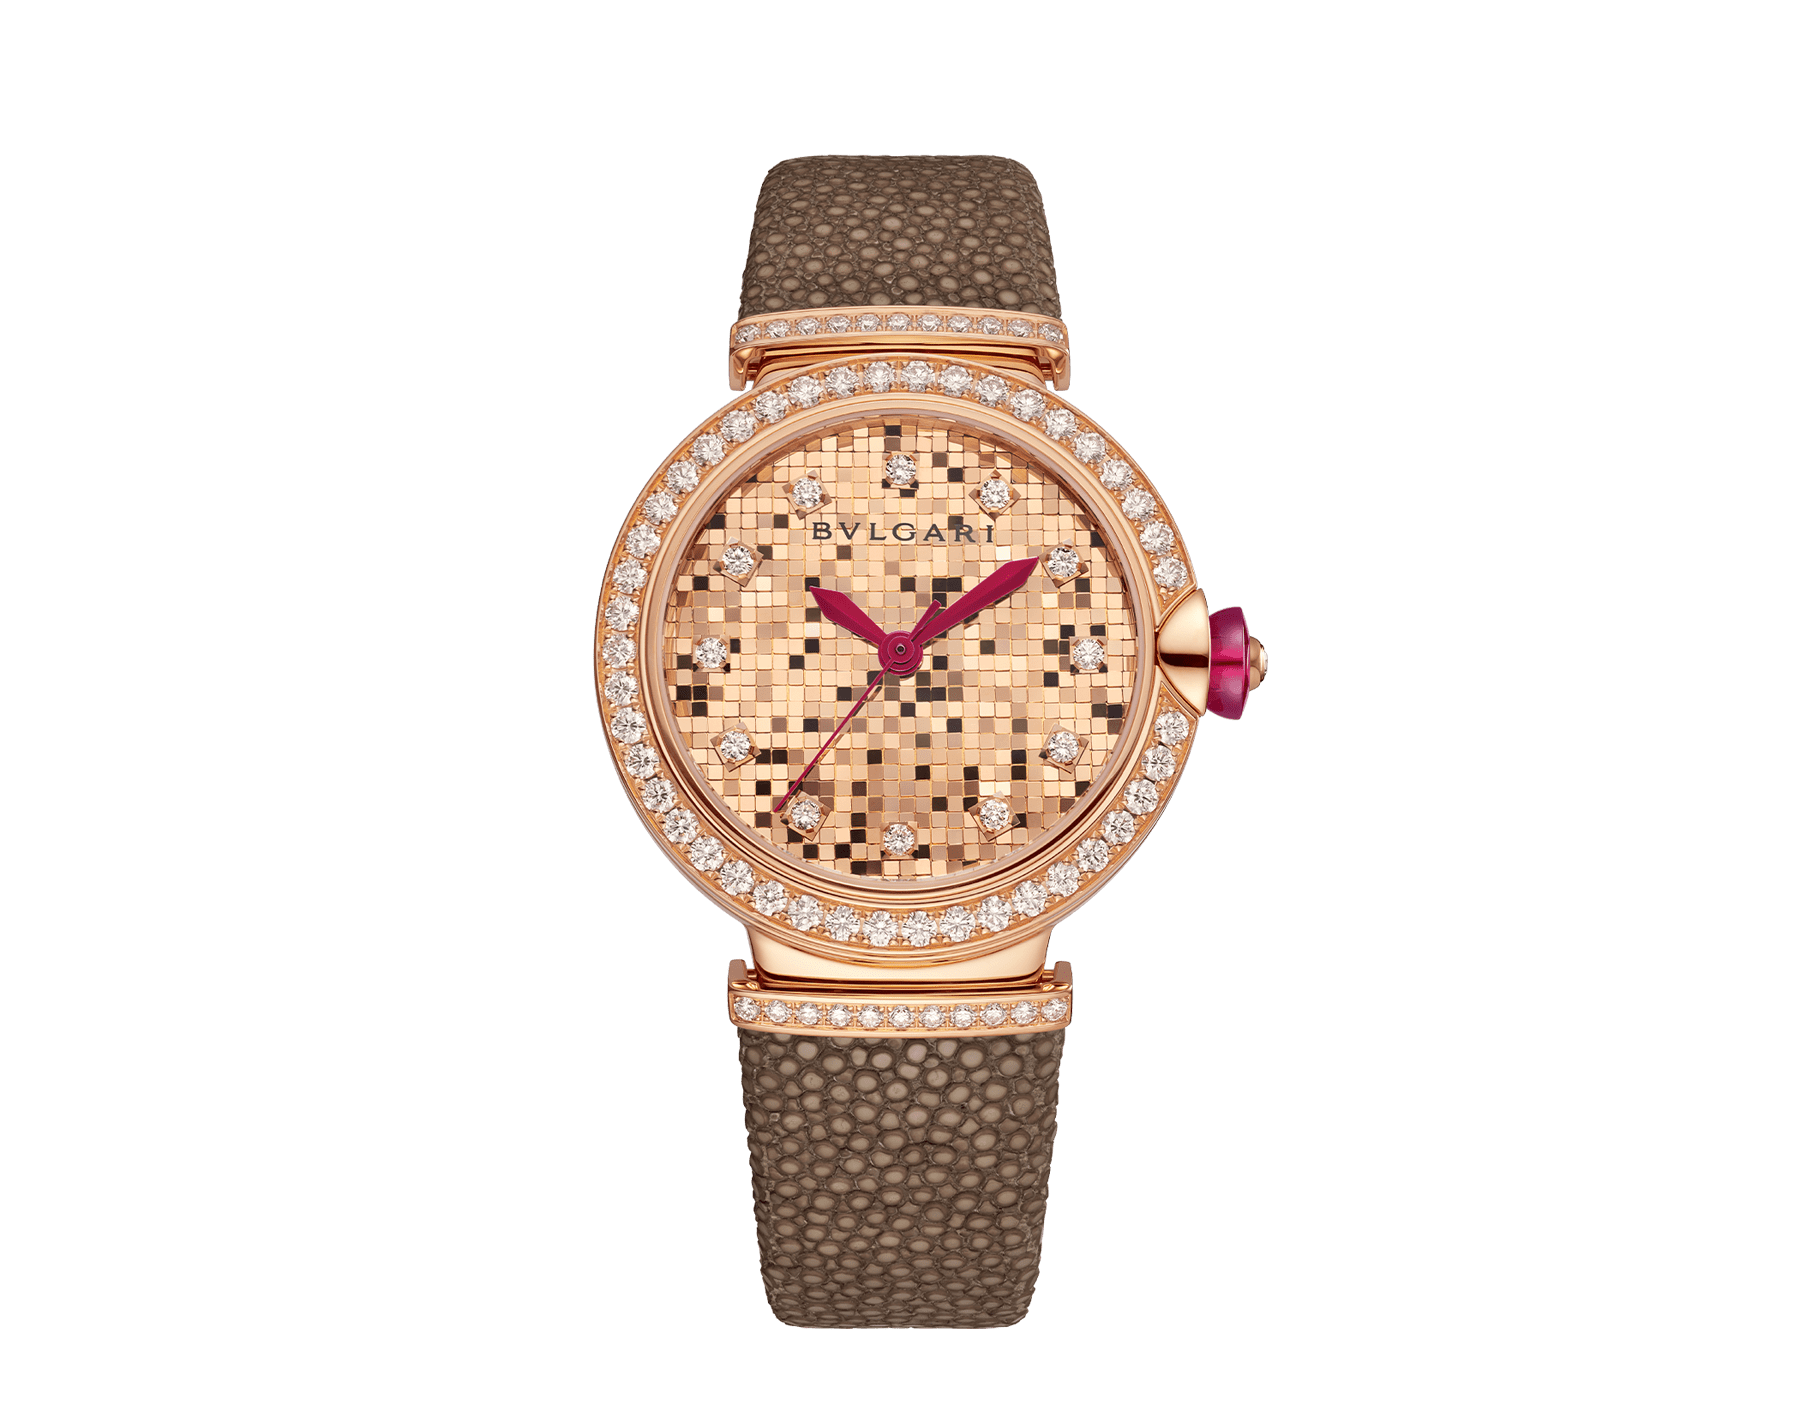 LVCEA watch with 18 kt rose gold case set with diamonds, 18 kt rose gold mosaic dial and bronze galuchat bracelet. 102799 image 1